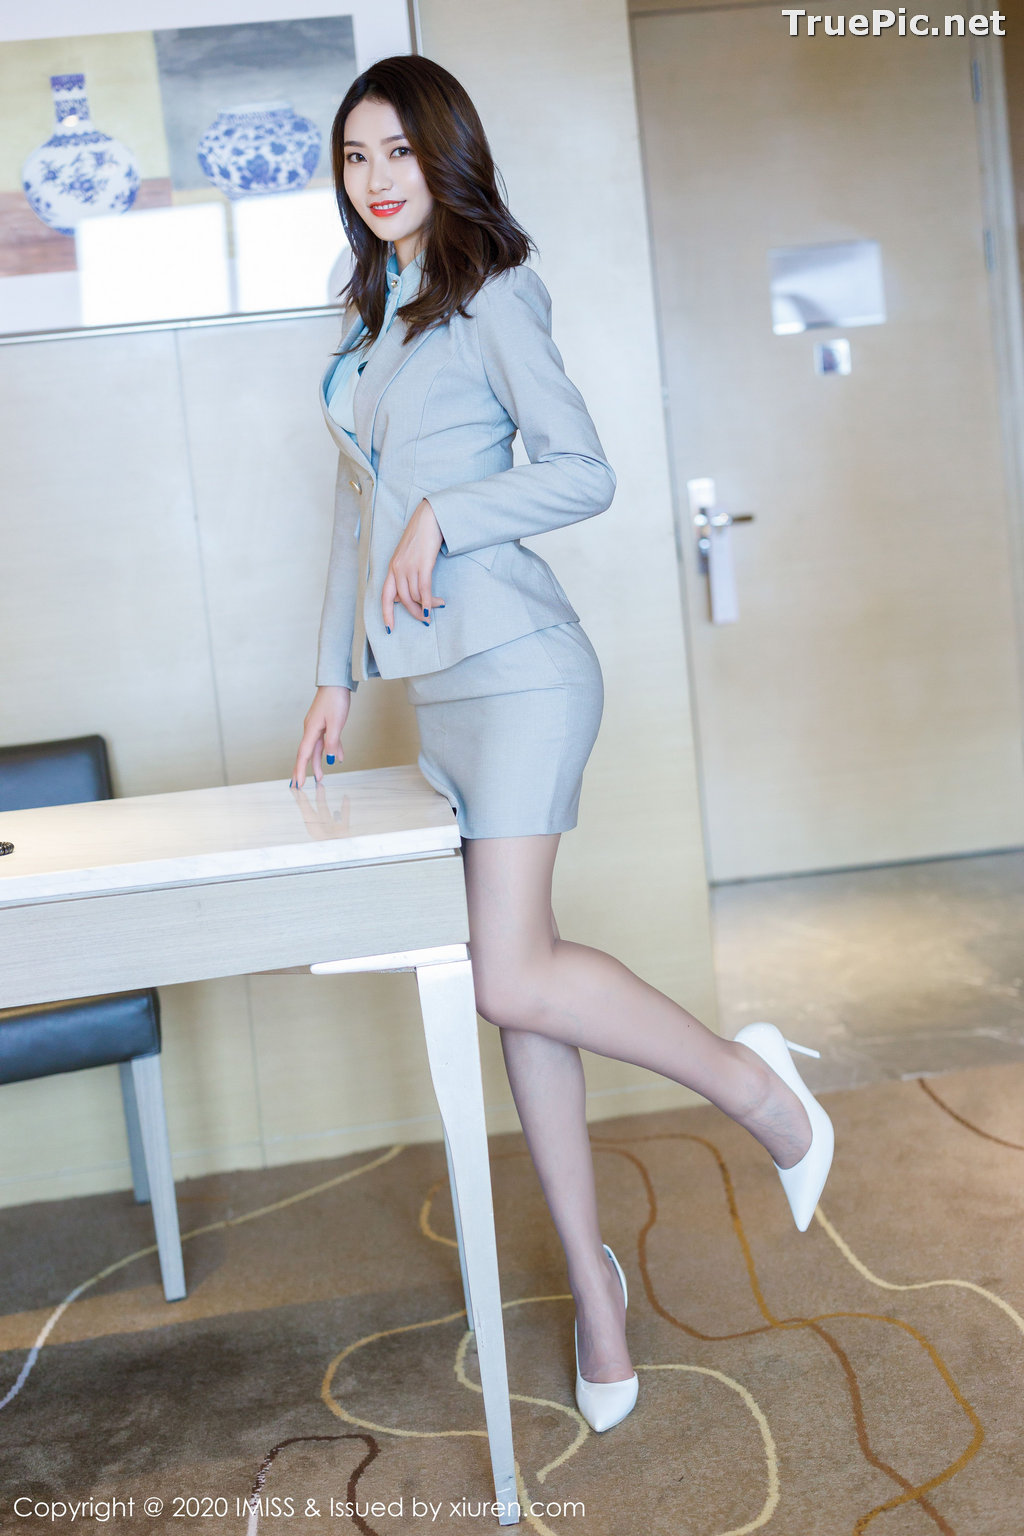 Image IMISS Vol.466 - Chinese Model - Fang Zi Xuan (方子萱) - Sexy Office Girl - TruePic.net - Picture-1